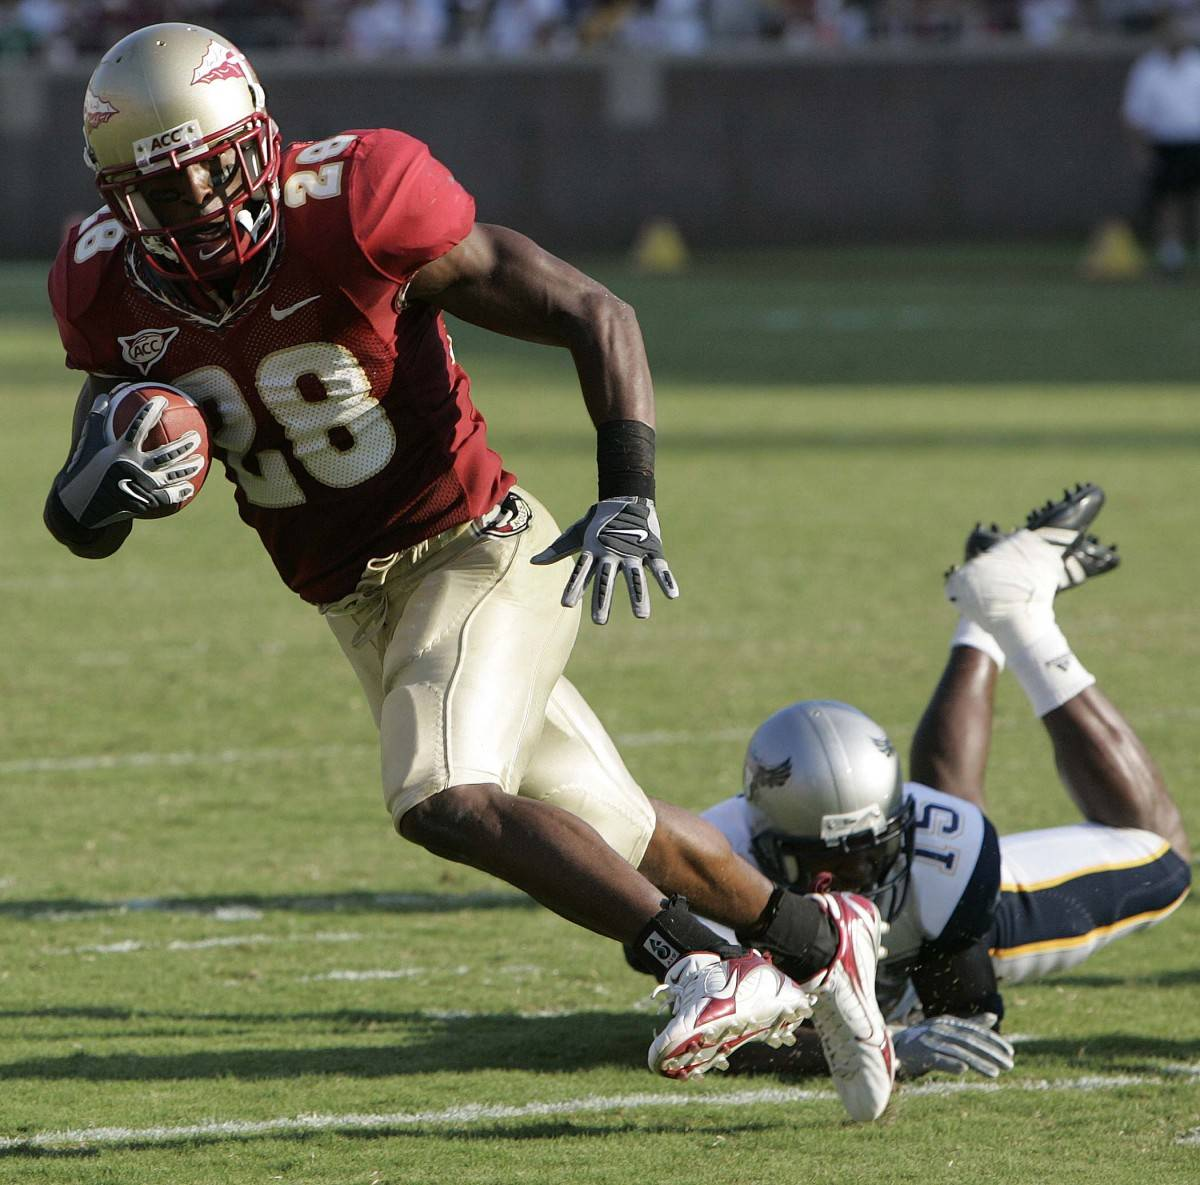 Florida State runningback Lorenzo Booker, left, runs away from Rice's Brandon King for a third-quarter touchdown, Saturday, Sept. 23, 2006, in Tallahassee, Fla.(AP Photo/Phil Coale)